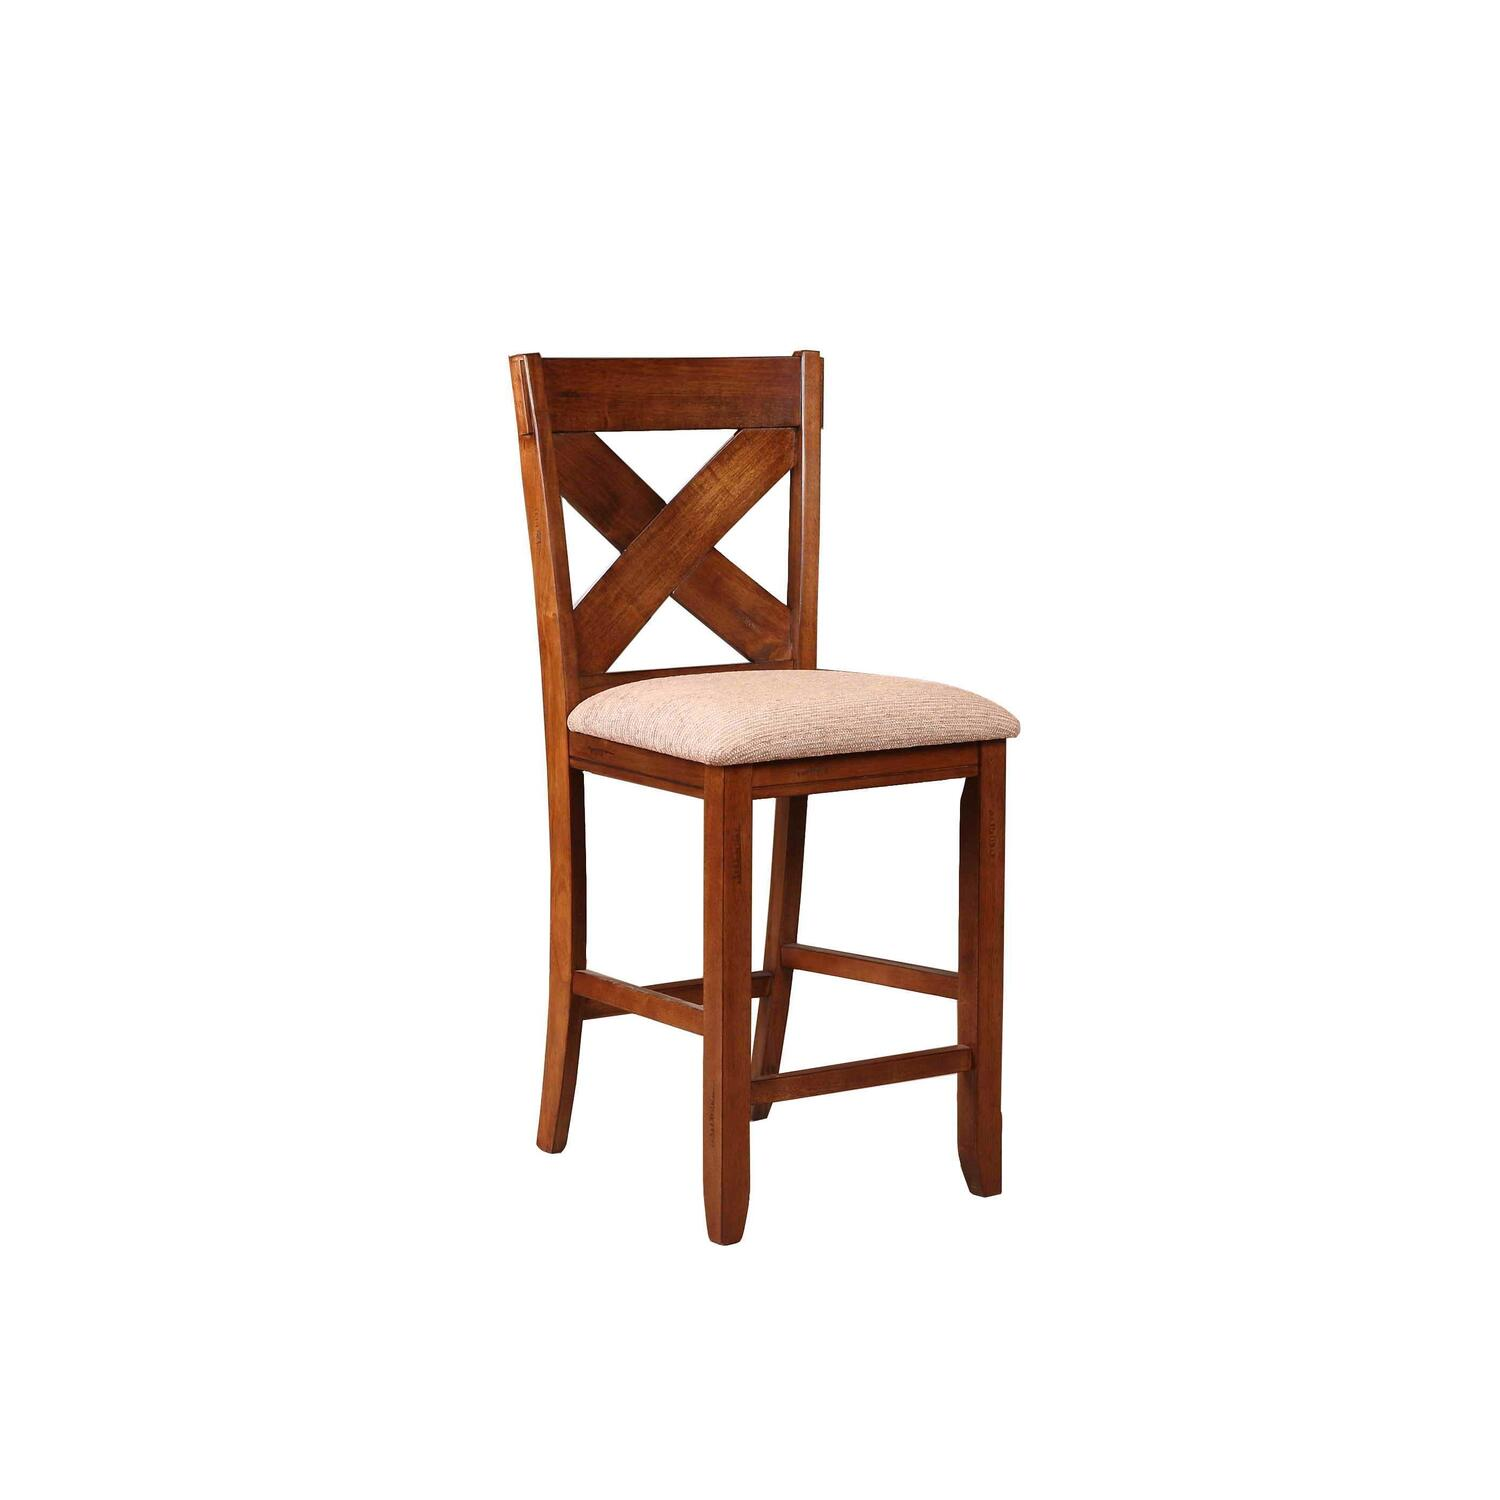 bar stool chair malaysia rent baby shower powell kraven counter by oj commerce 713 430 119 00